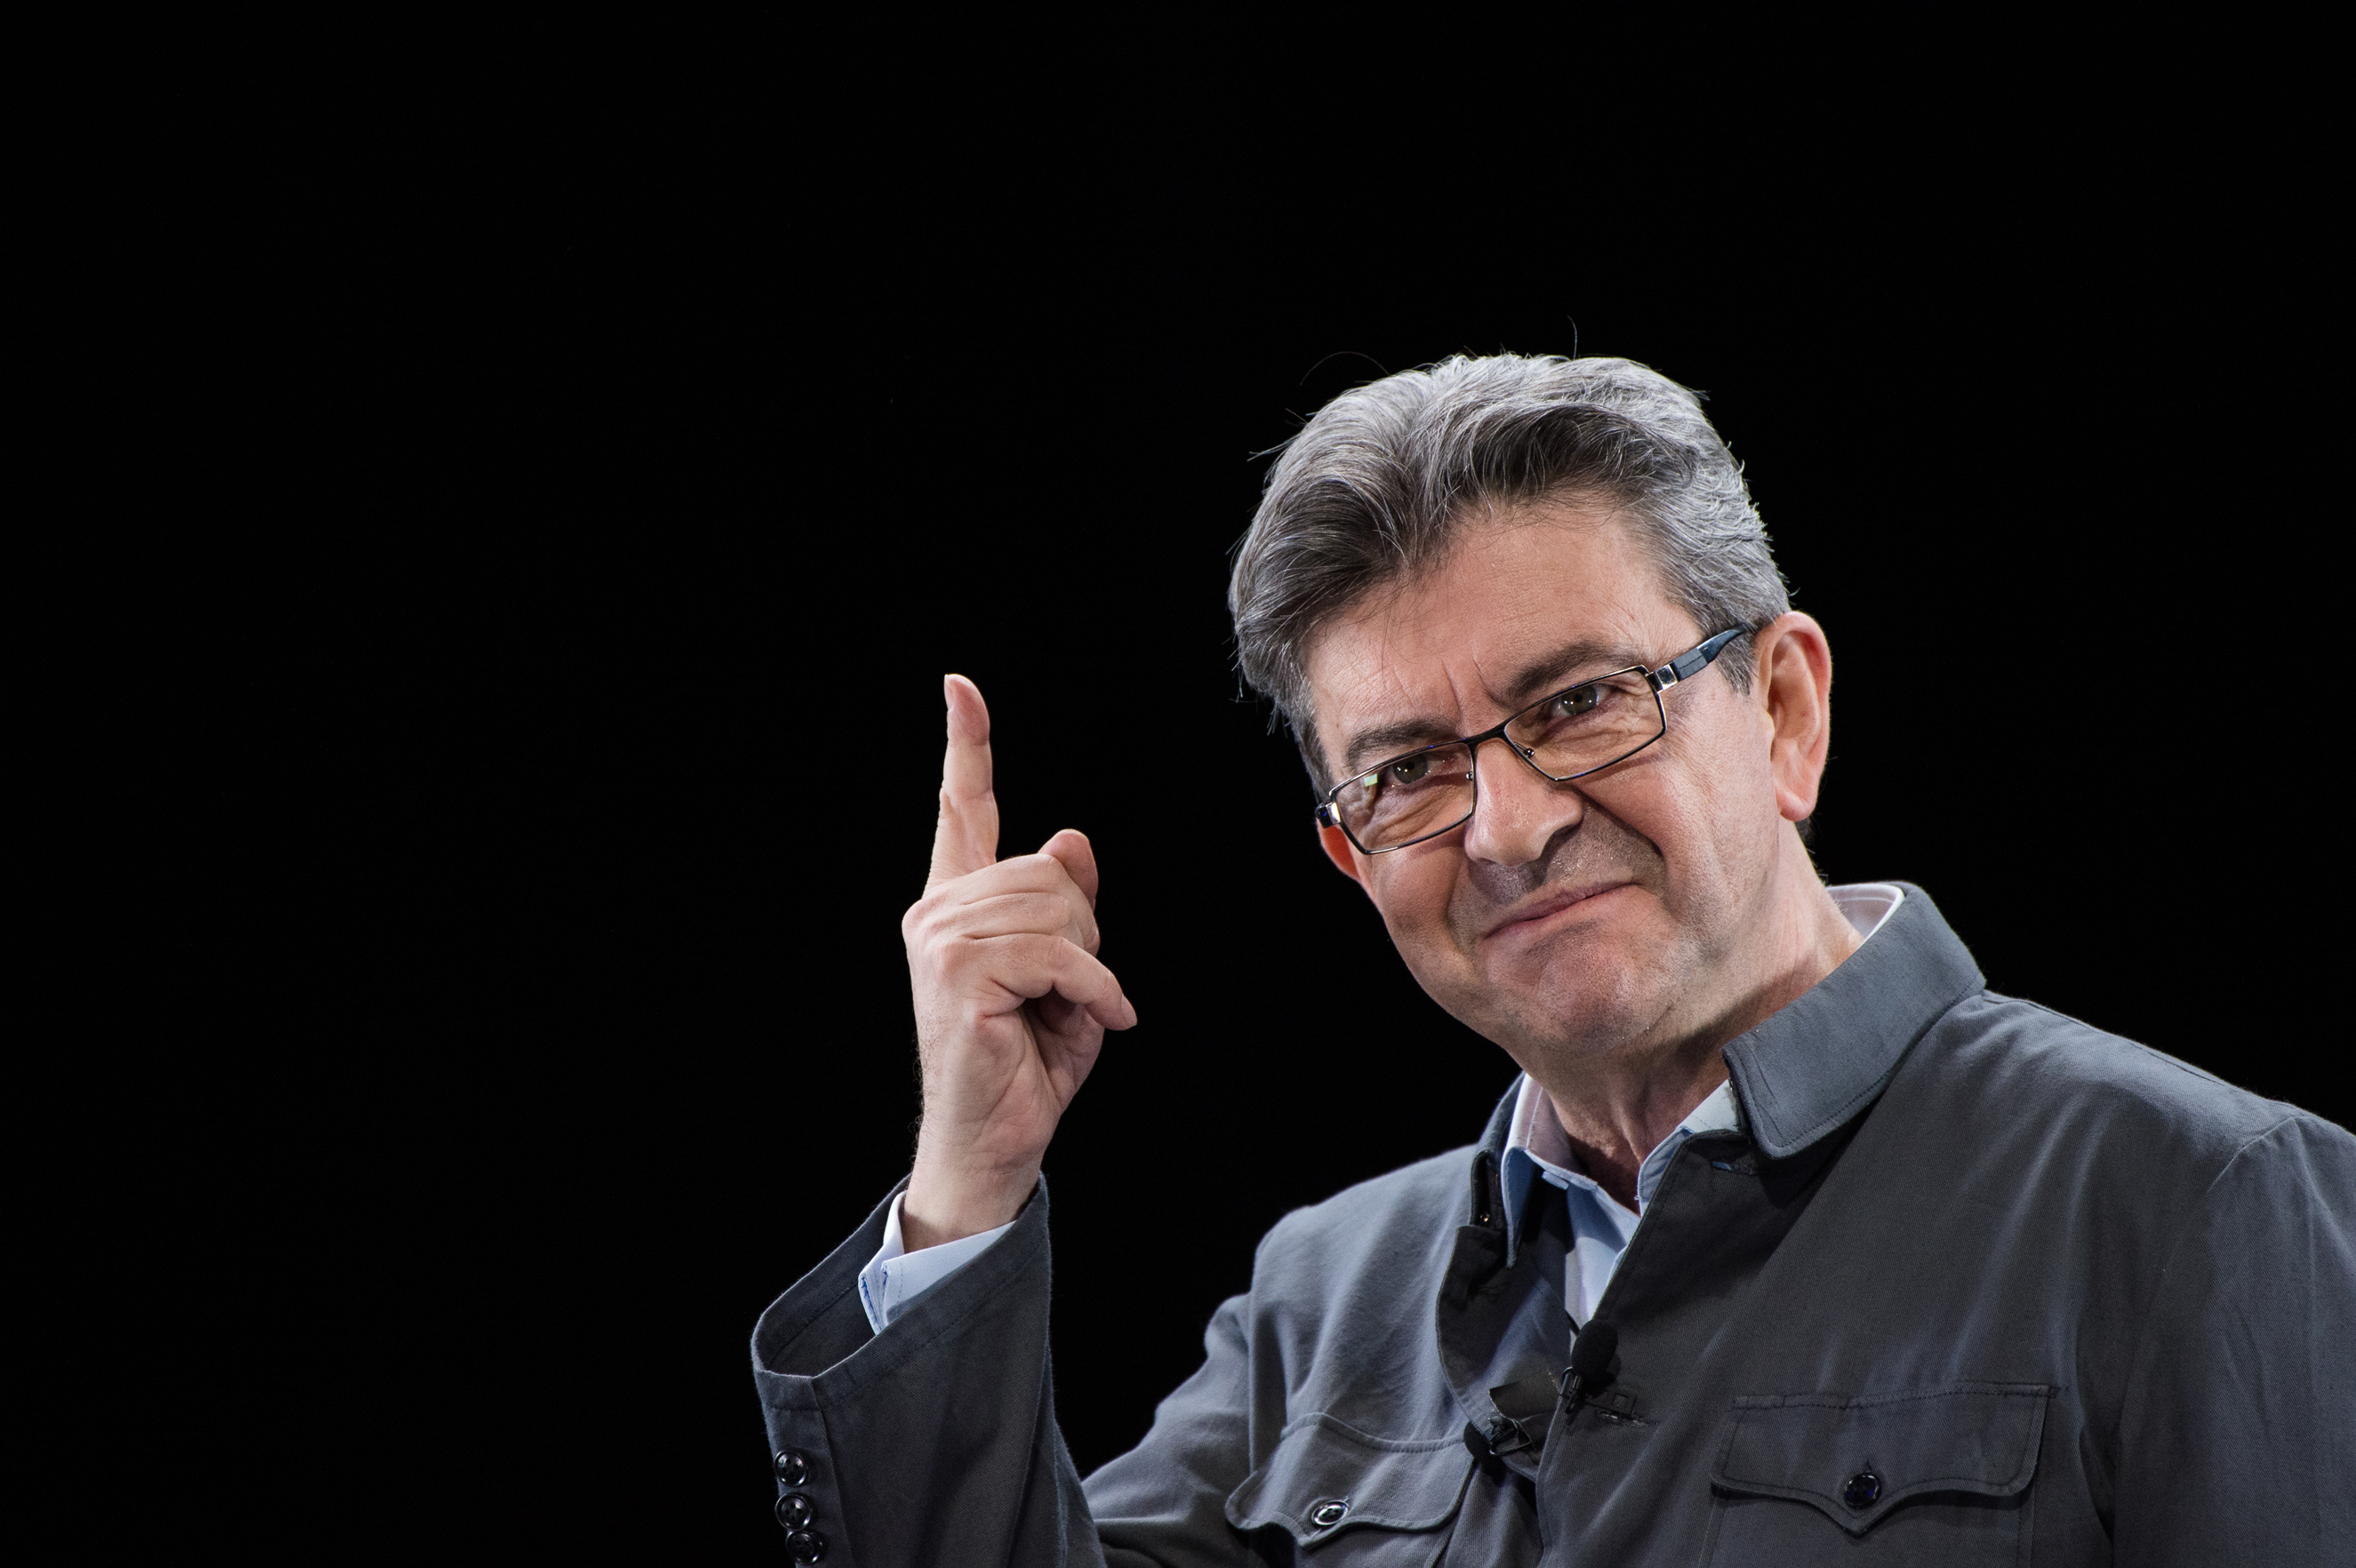 Founder of the left wing movement 'La France Insoumise' and candidate for the 2017 French Presidential Election Jean Luc Melenchon delivers a speech during his meeting on February 5, 2017 in Lyon, France.